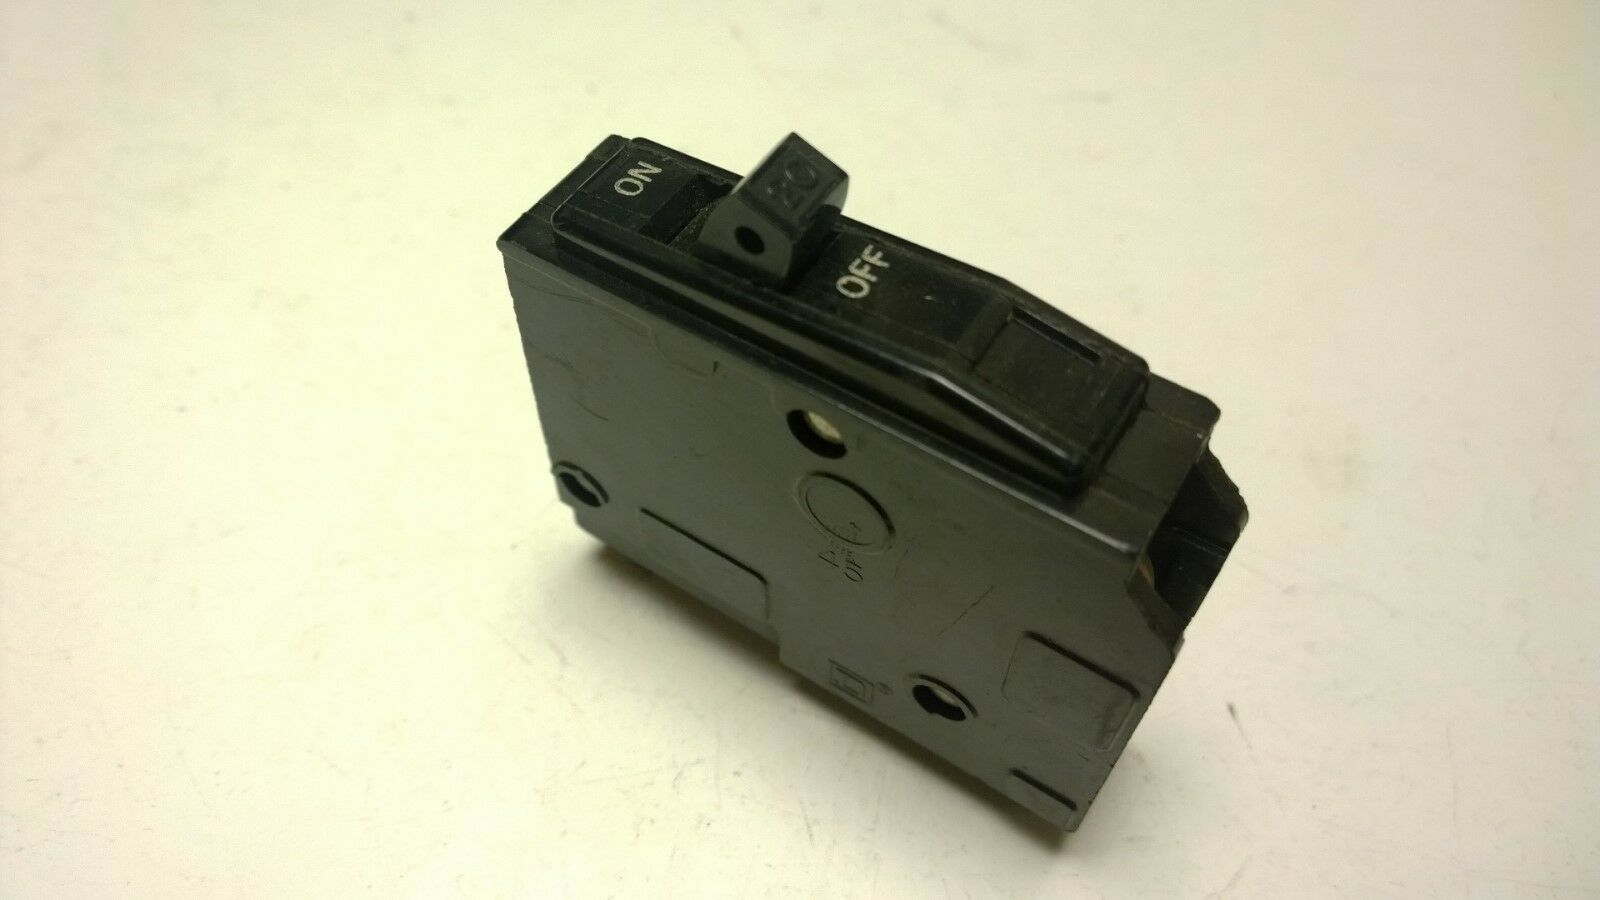 Square D Circuit Breaker Qo120 Qo 120 20 Amp 1 Pole Plug On Older Arc Fault 15 240 Volt Ac 1pole Plugon Style Of 2only 4 Available